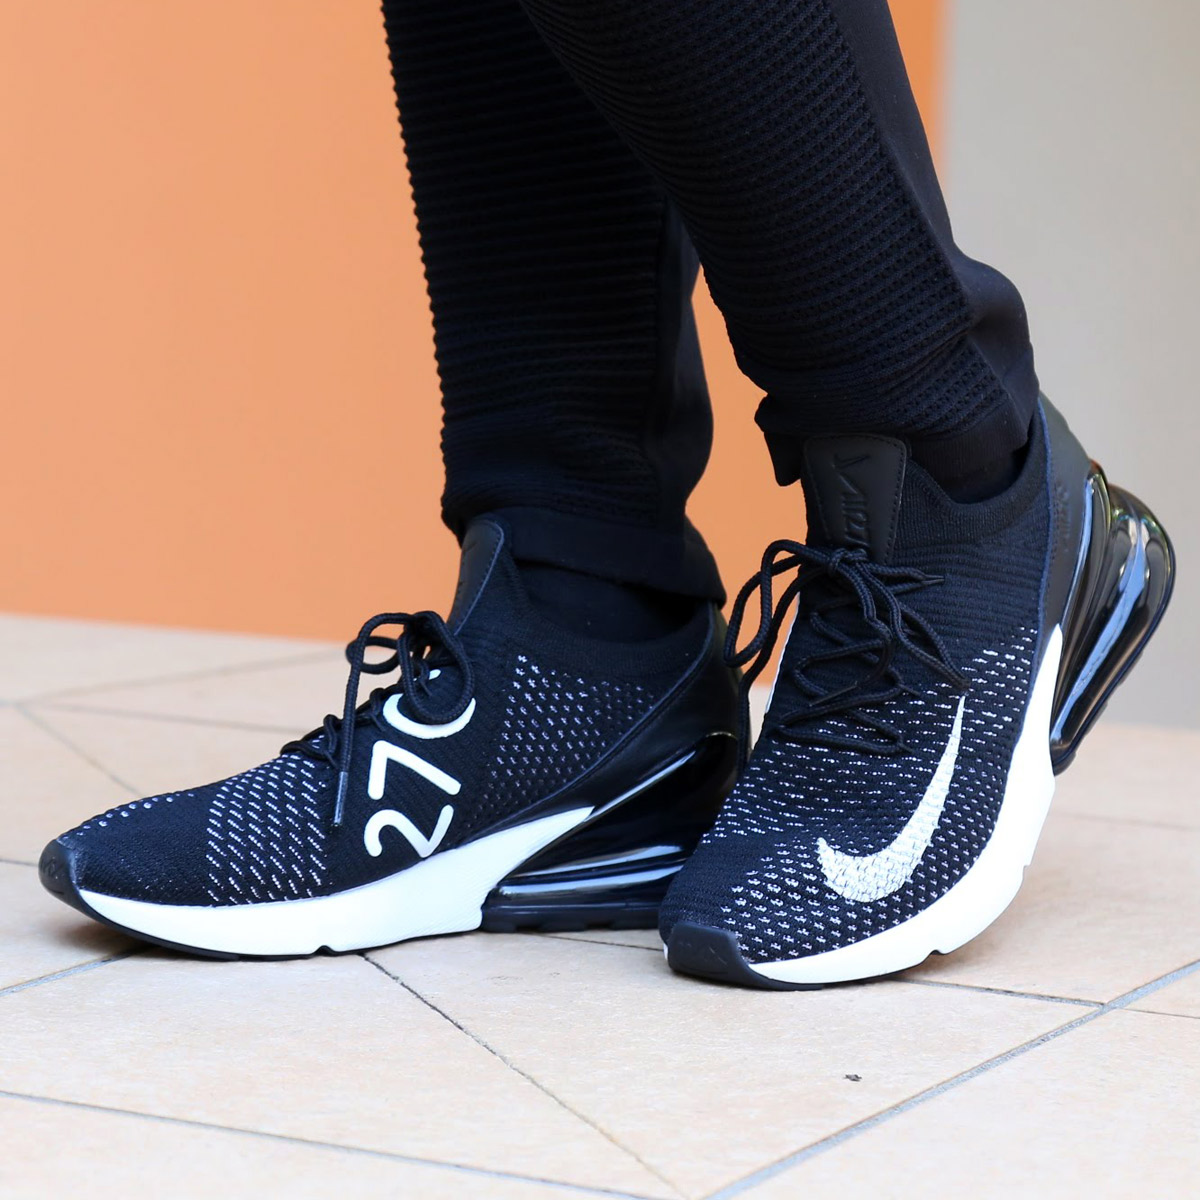 63667111b30 NIKE W AIR MAX 270 FLYKNIT (Nike women Air Max 270 fried food knit)  (BLACK WHITE-WHITE) 18SU-S